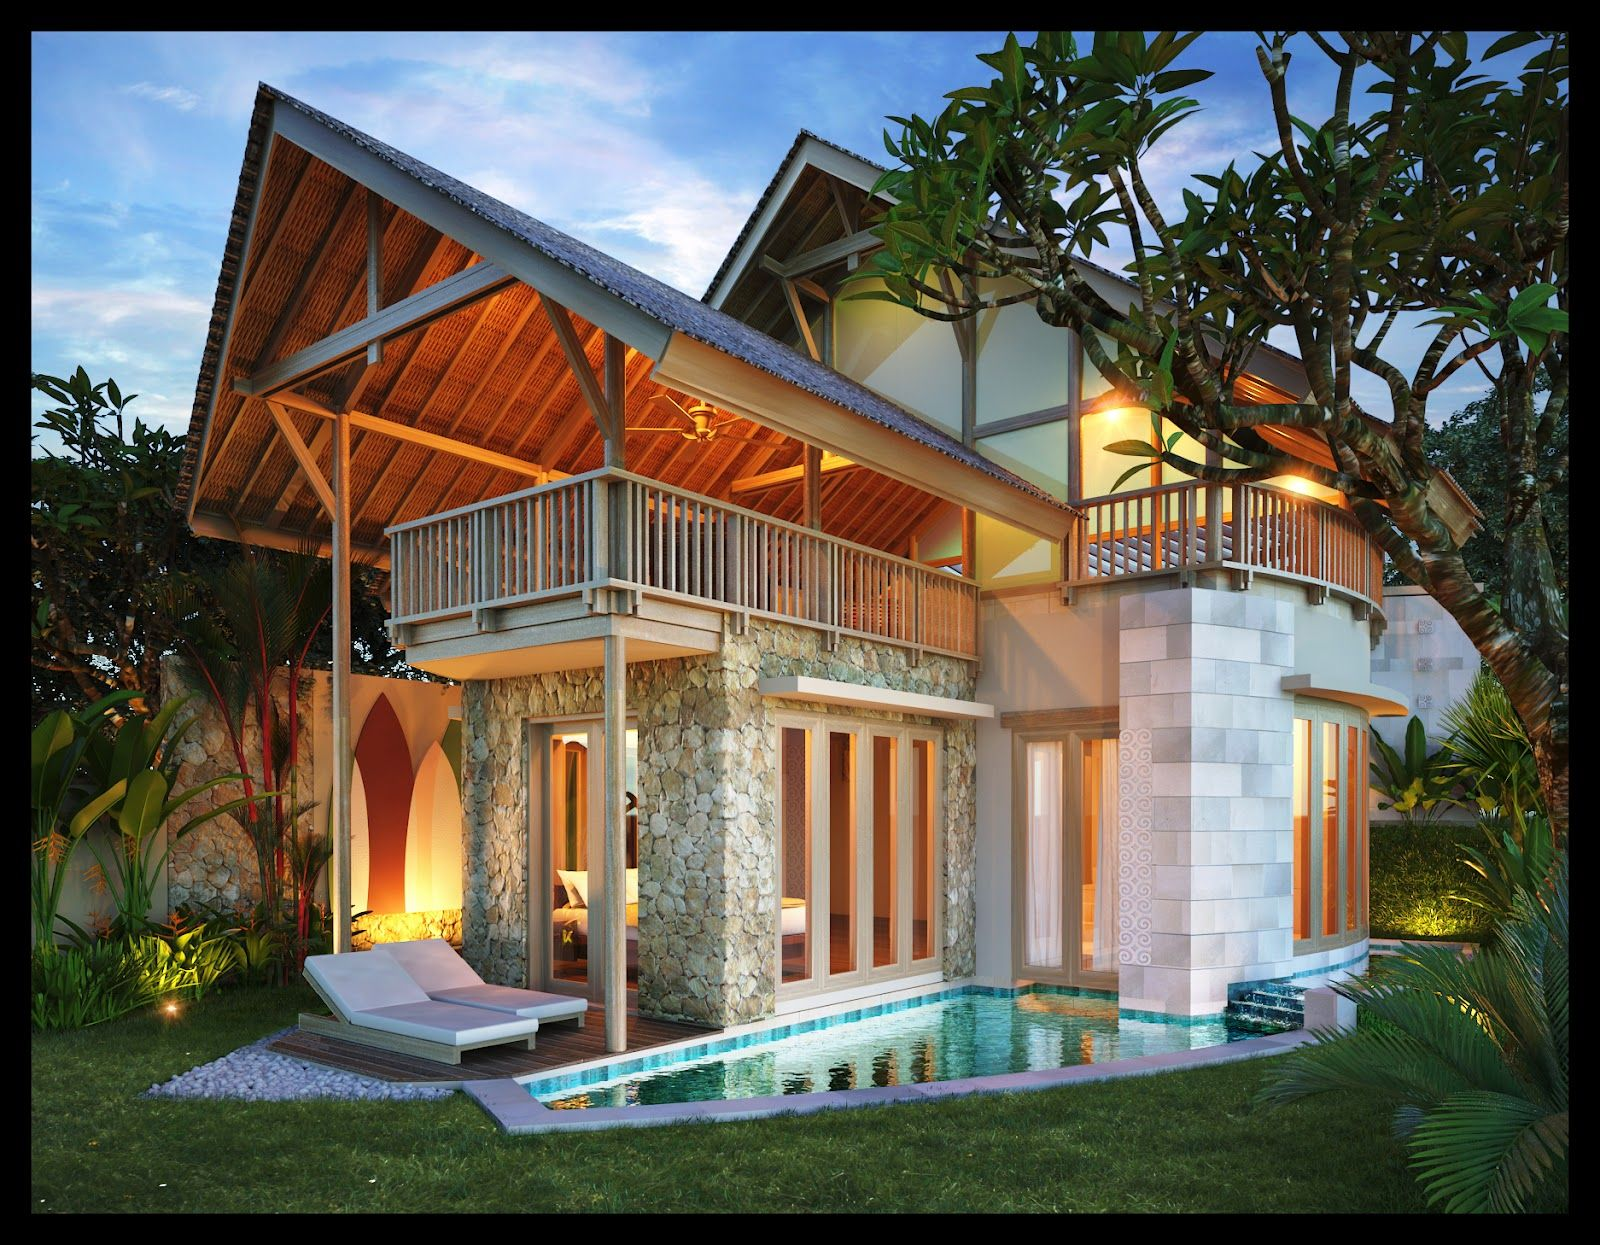 Balinese Houses Designs Home Design Ideas Inexpensive House Plans Beach House Design Tropical House Design Modern Tropical House